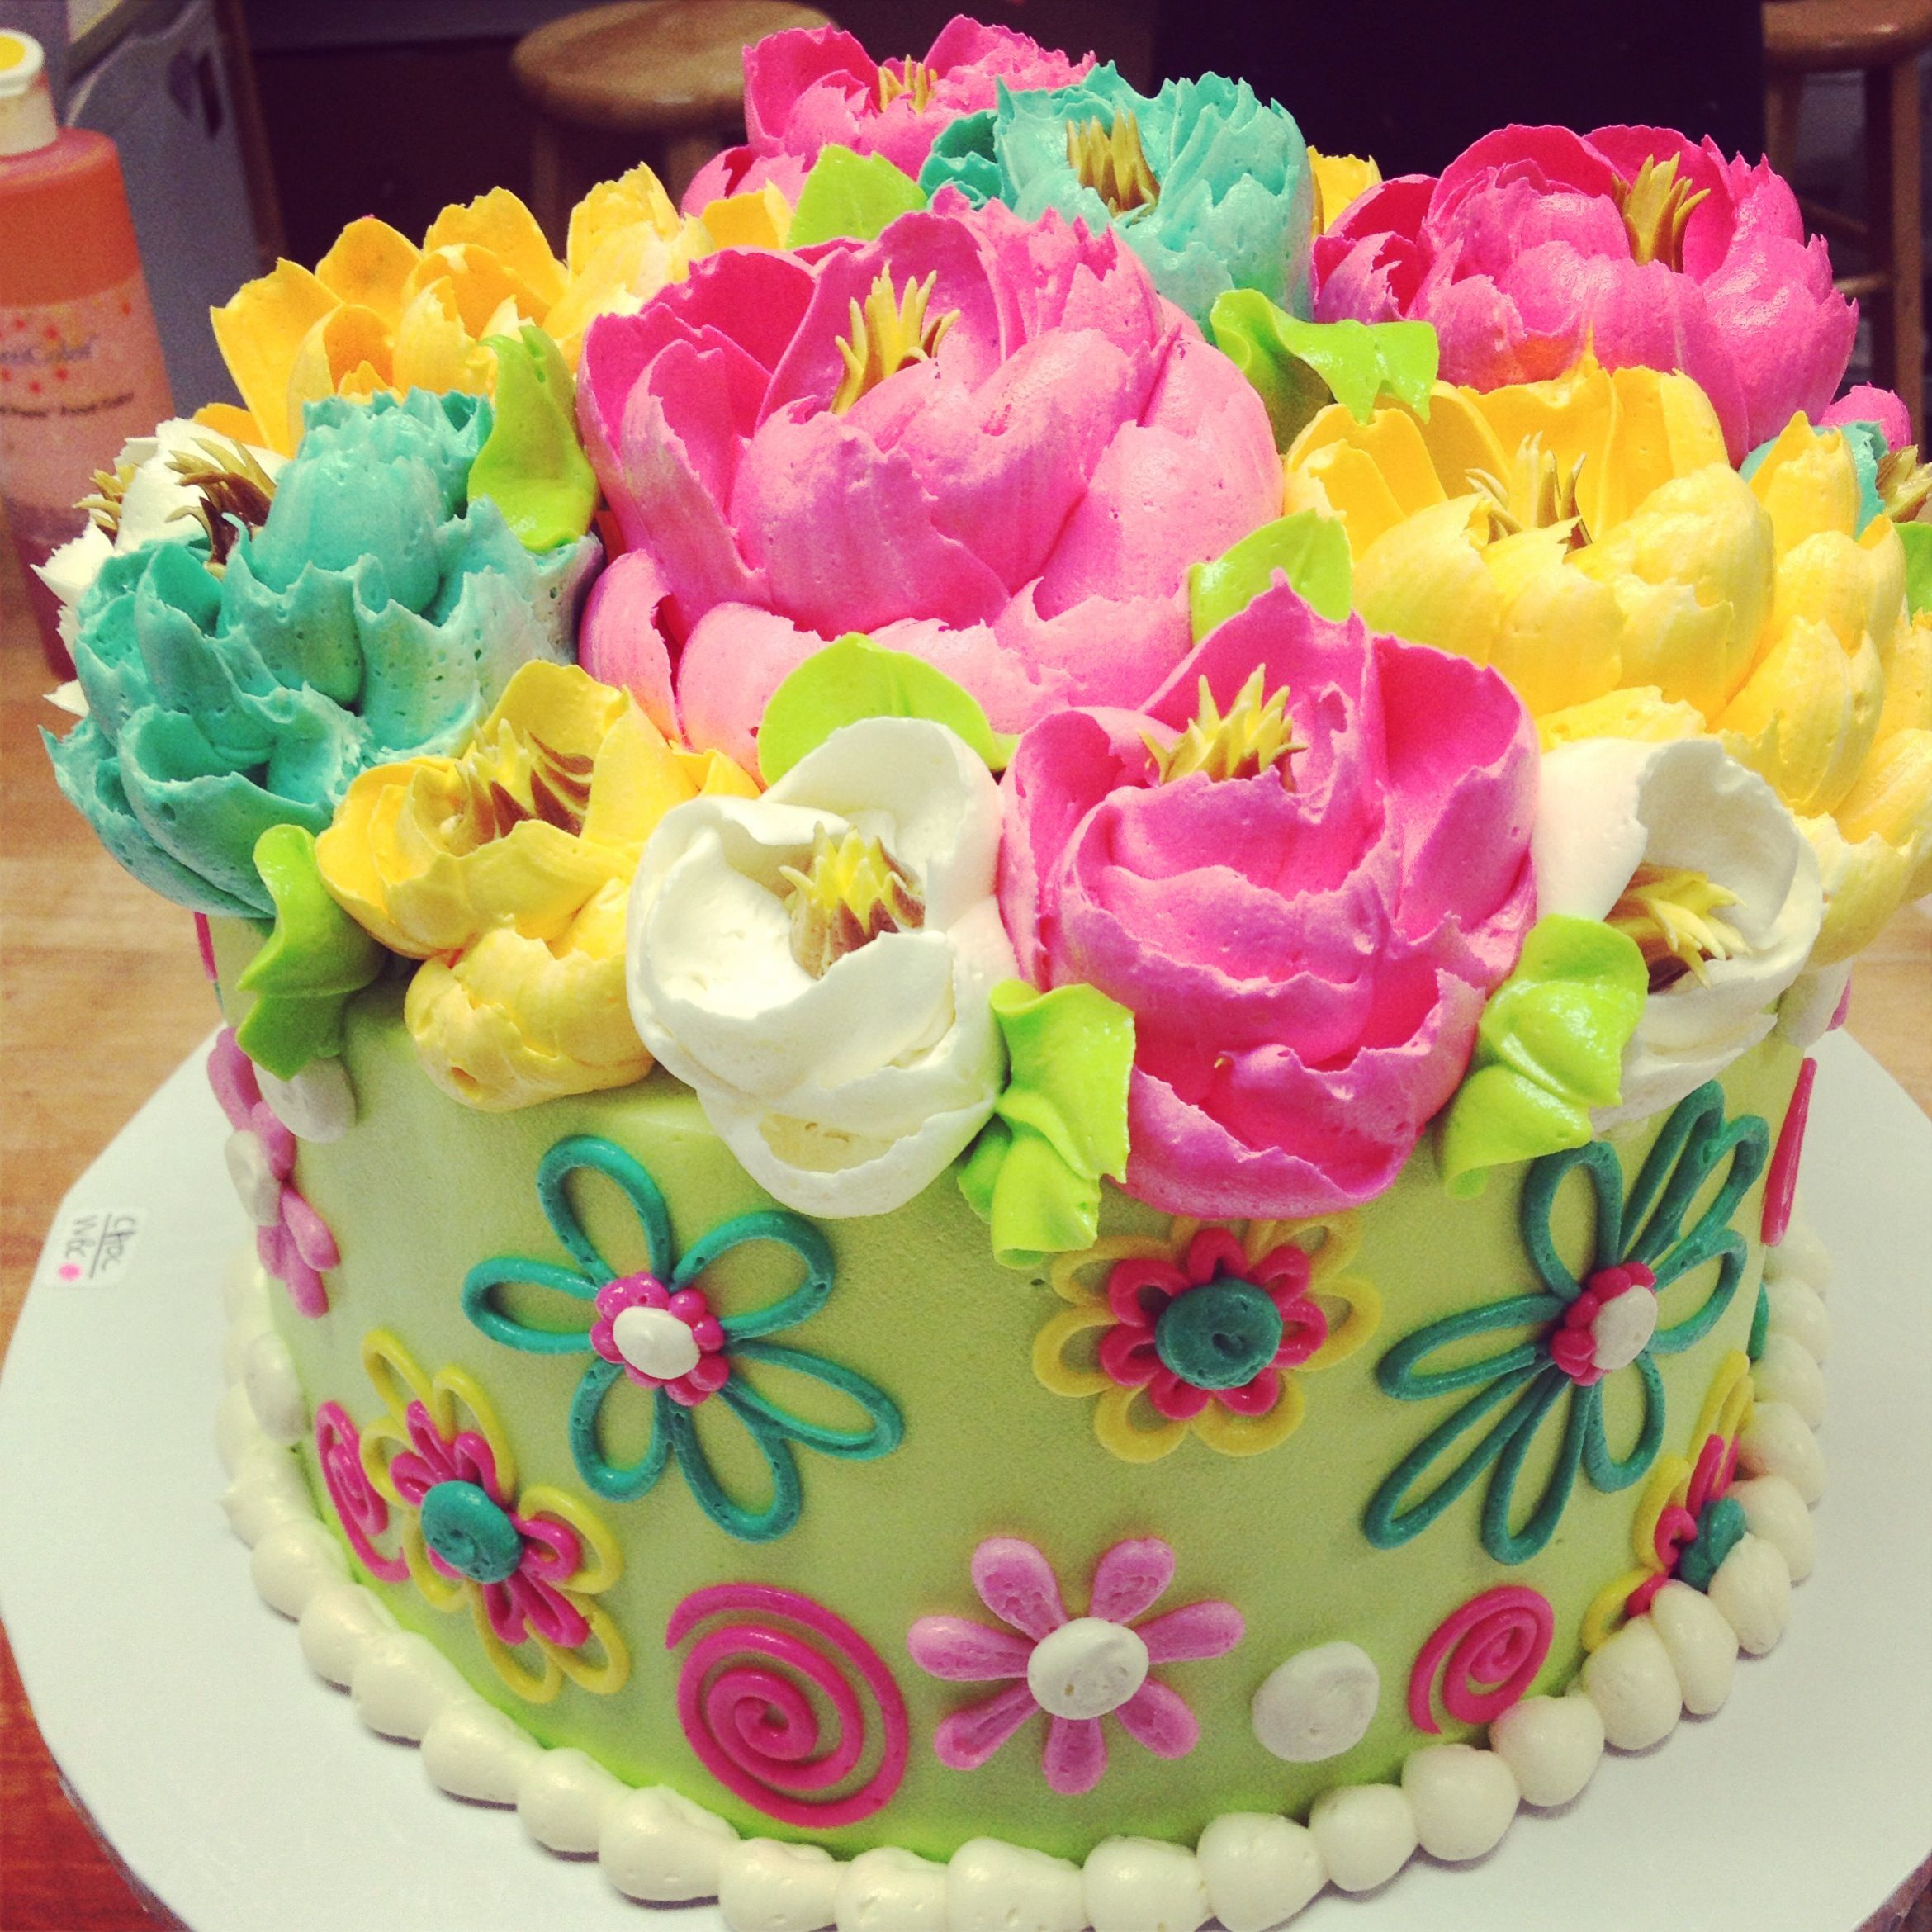 Birthday Flower Cake Adorable Flower Themed Buttercream Birthday Cake From The White